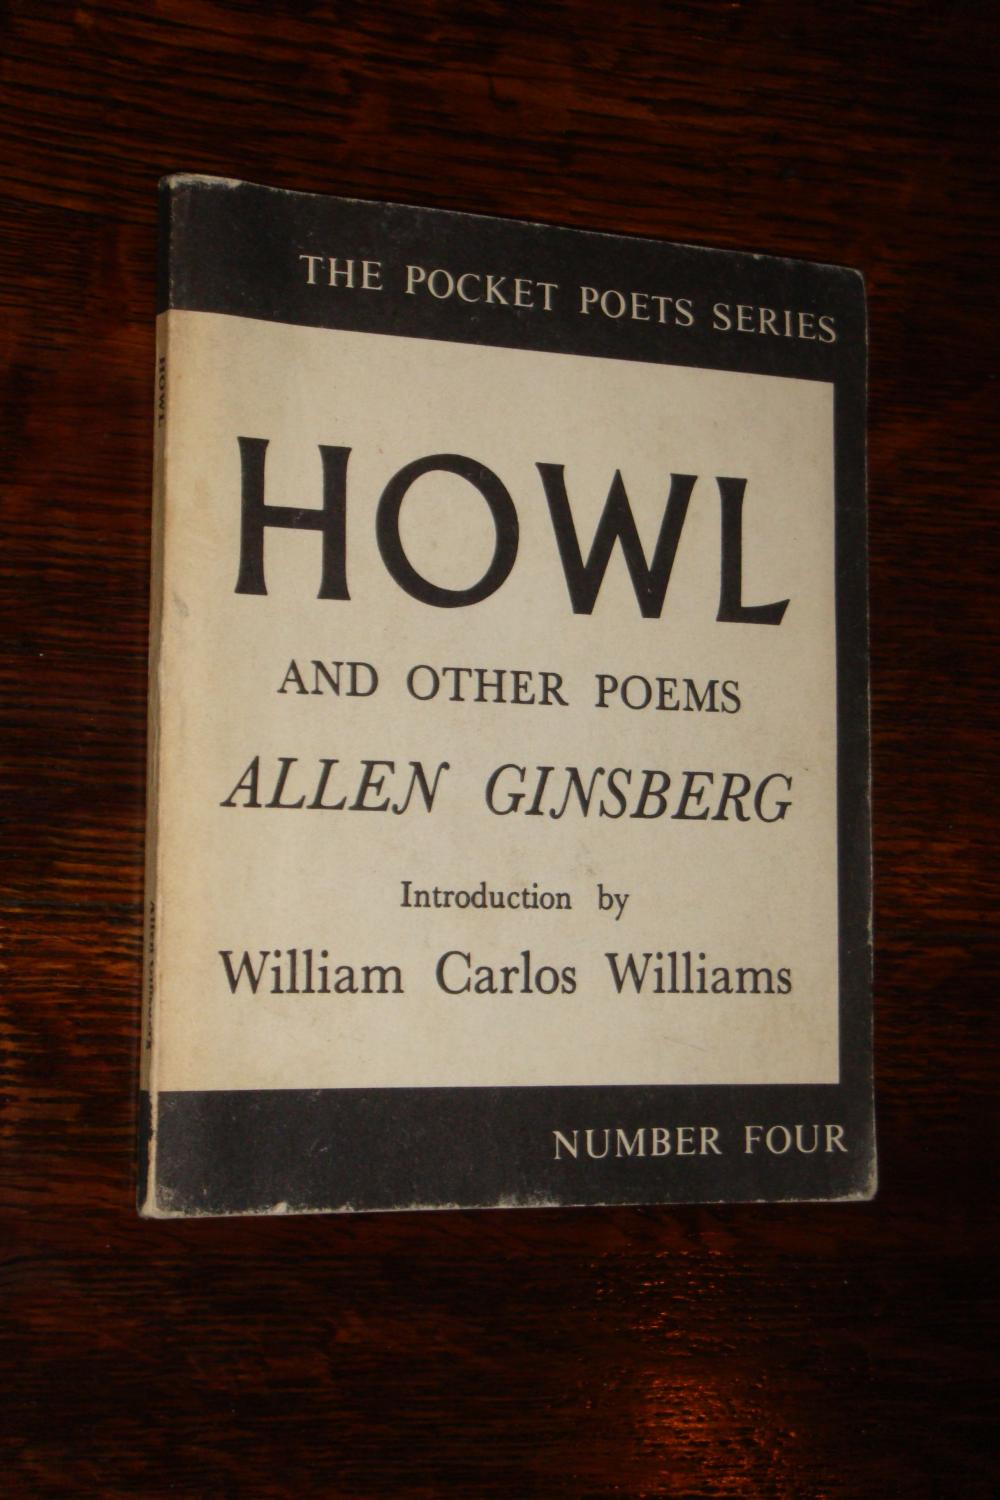 a review of the poems howl and kaddish by allen ginsberg Allen ginsberg's howl and other poems was originally published by city lights books in the fall of 1956 subsequently seized by us customs and the san francisco police, it was the subject of a long court trail at which a series of poets and professors persuaded the court that the book was not obscene.